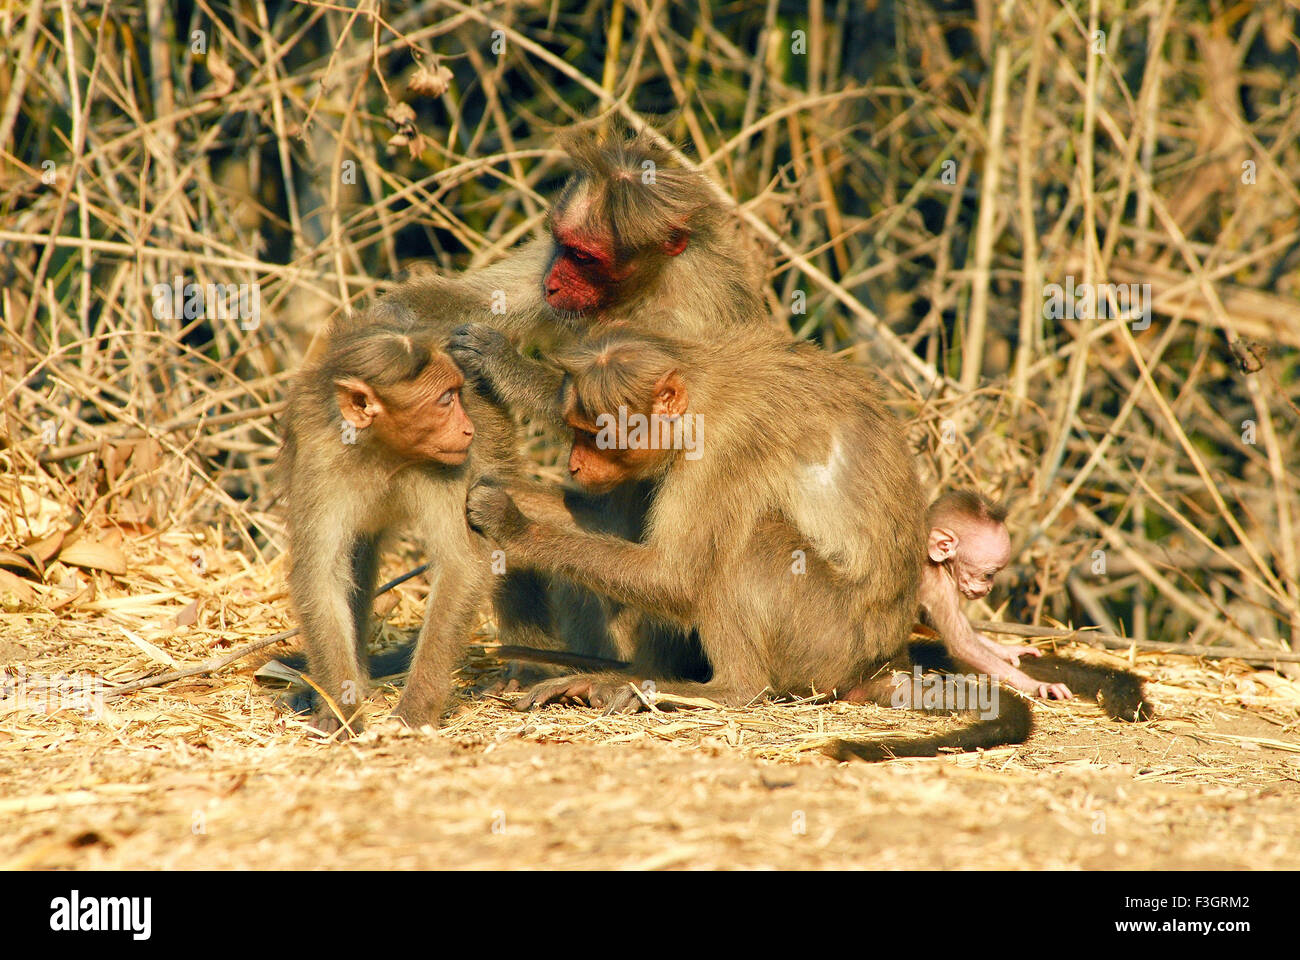 Bonnet monkey Macaca radiata particular specie with red face found in Bandipur ; Karnataka ; India - Stock Image